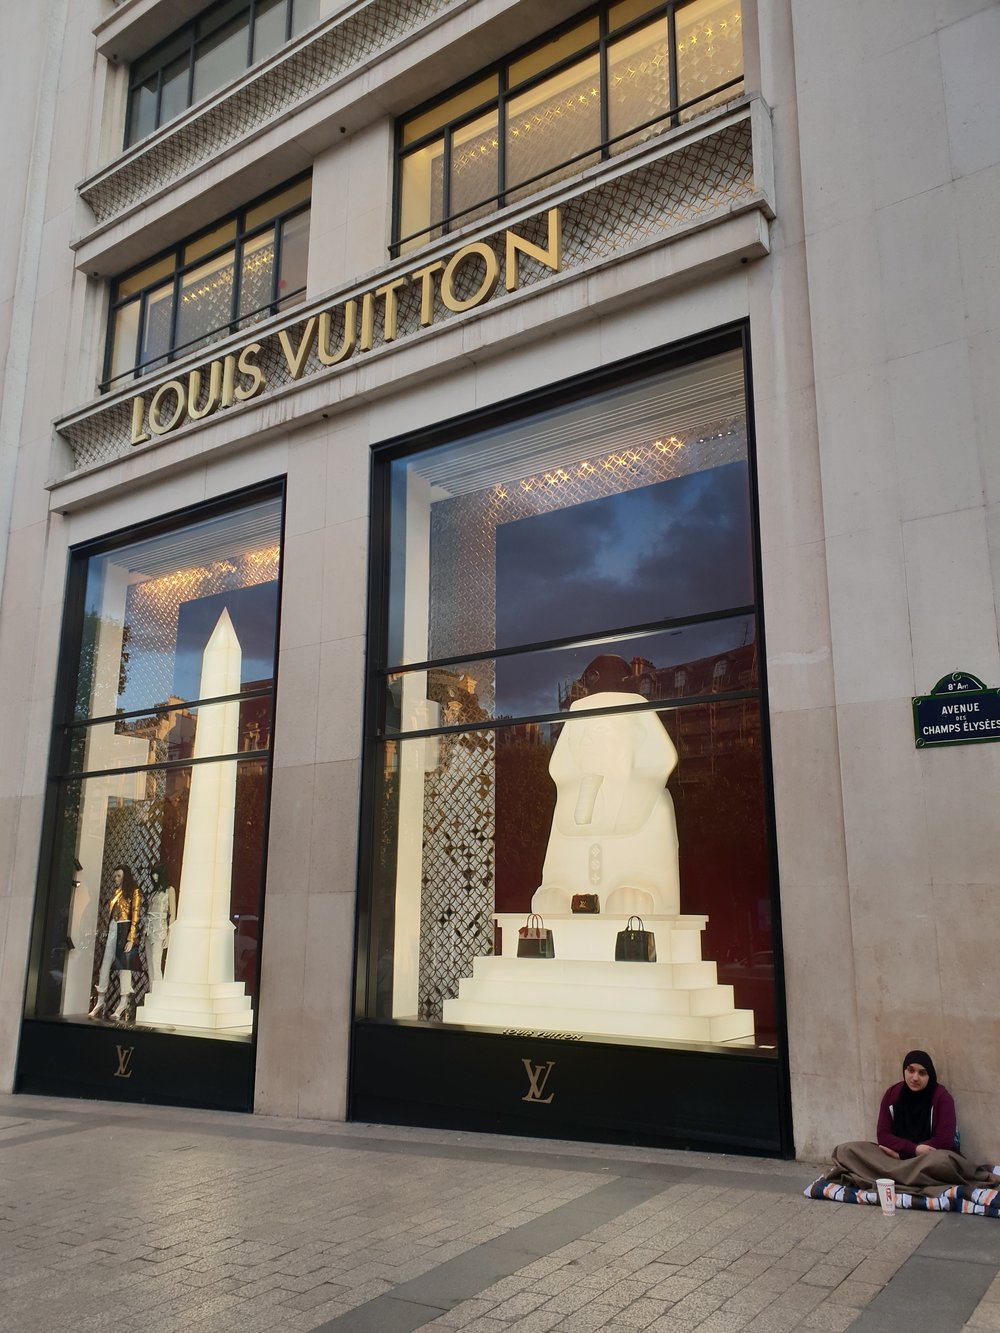 Louis Vuitton, Des Champs Elysees